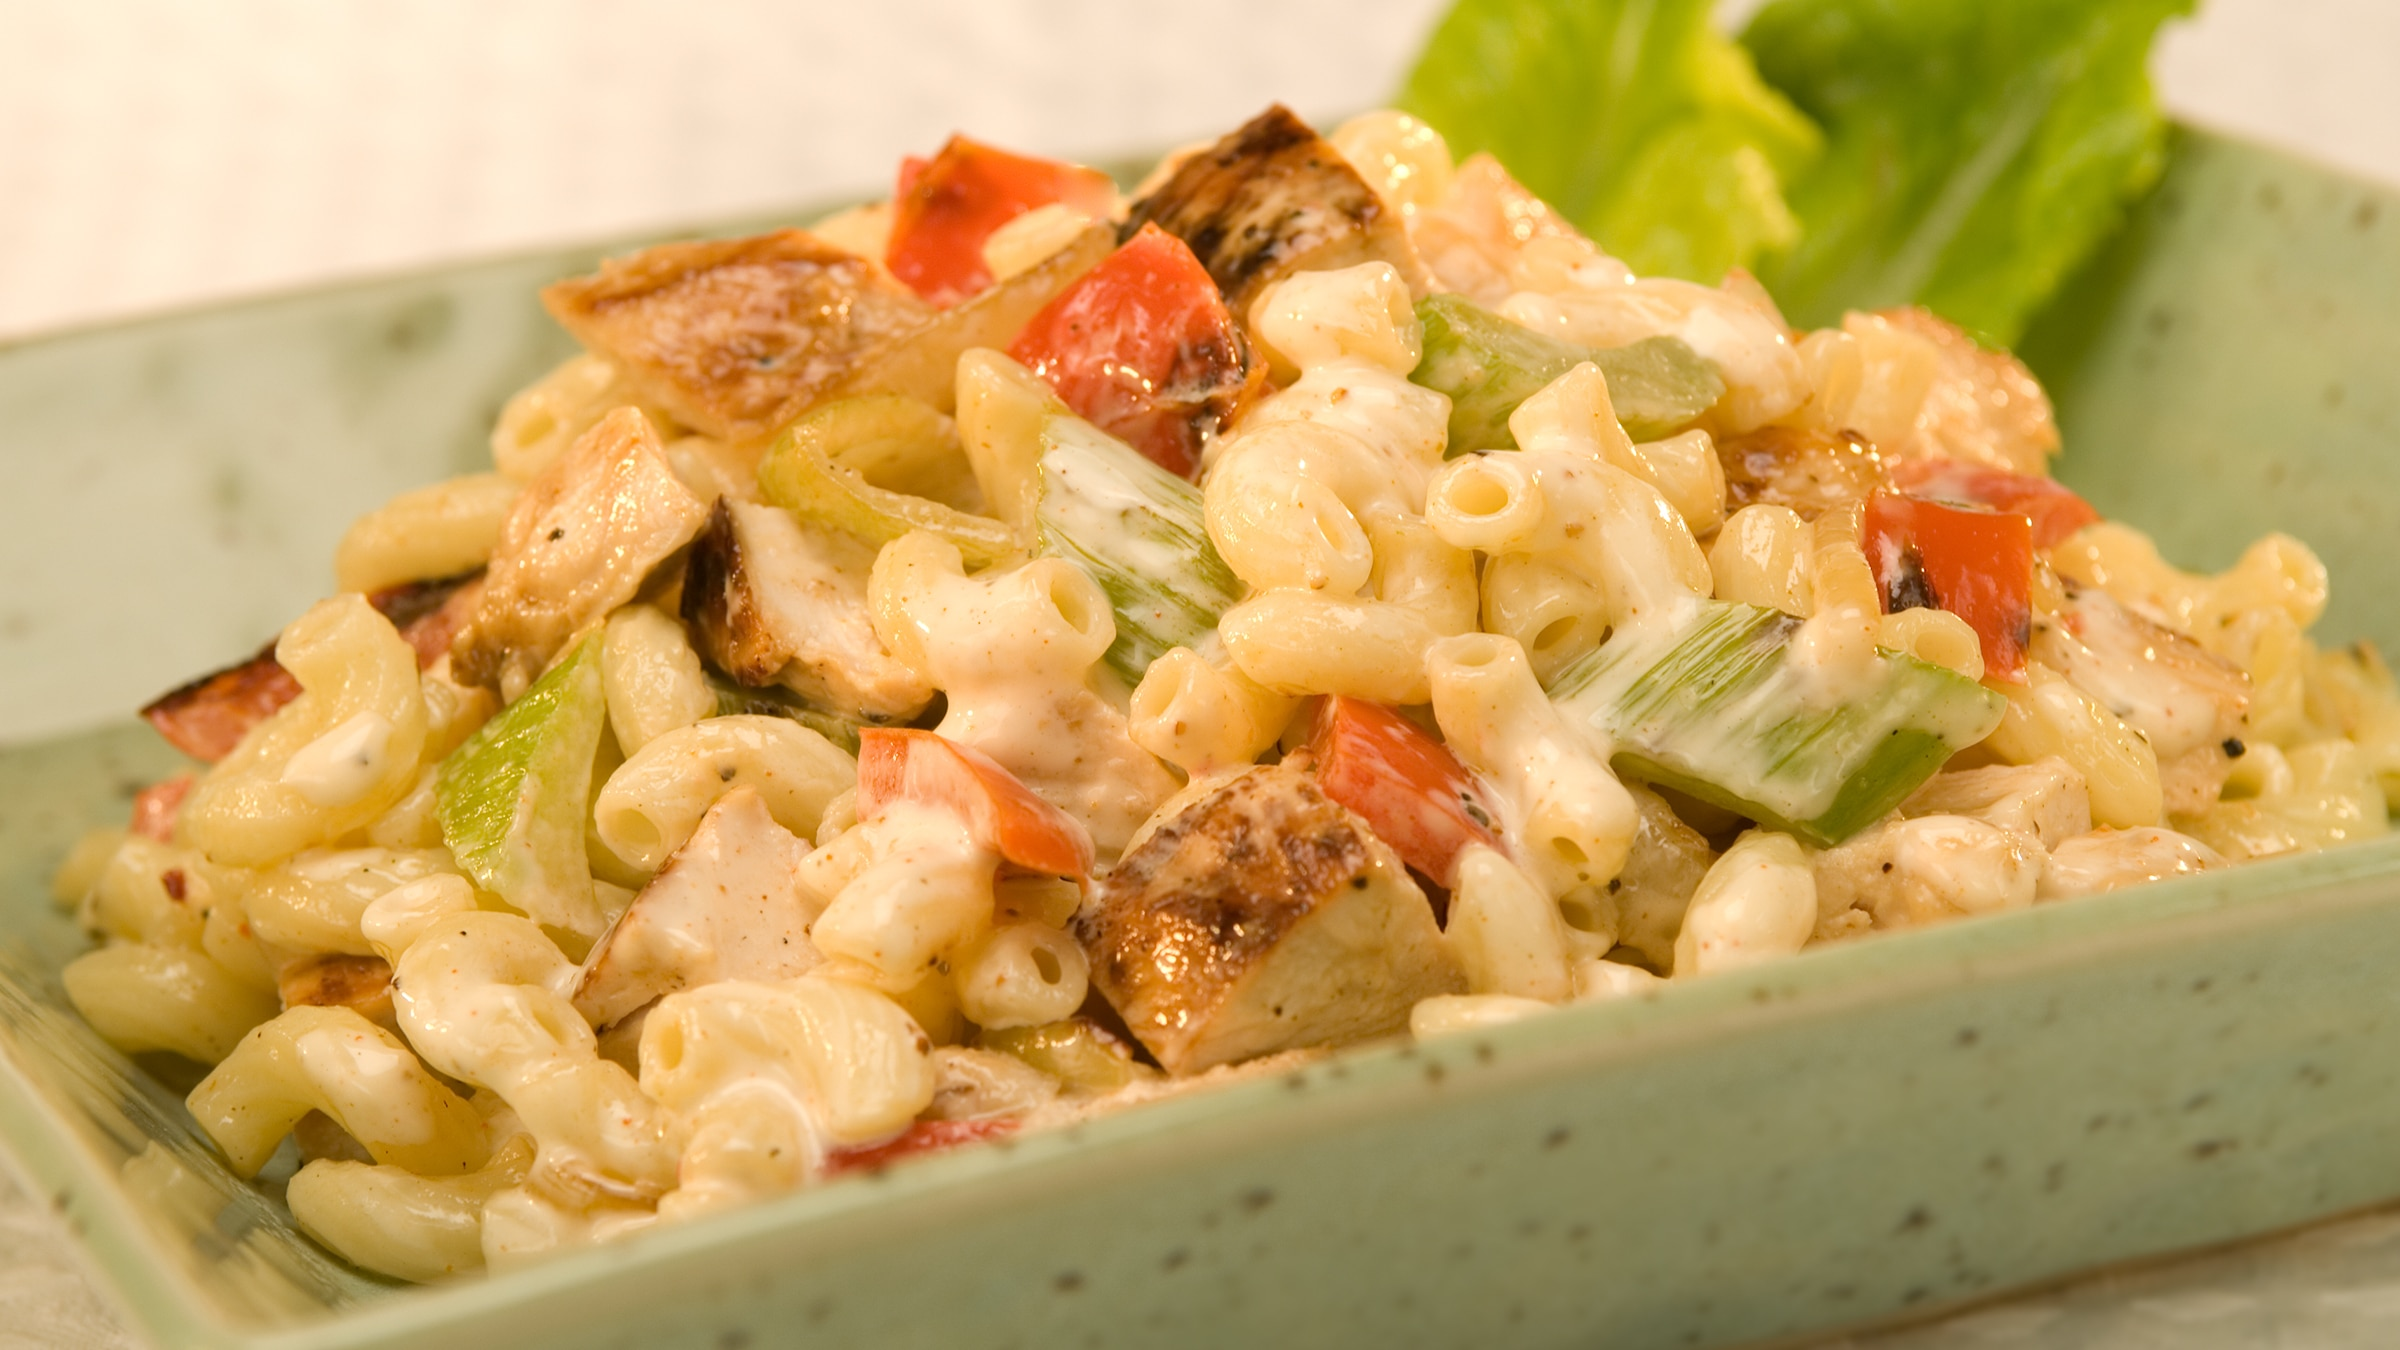 Grilled Chicken Macaroni Salad